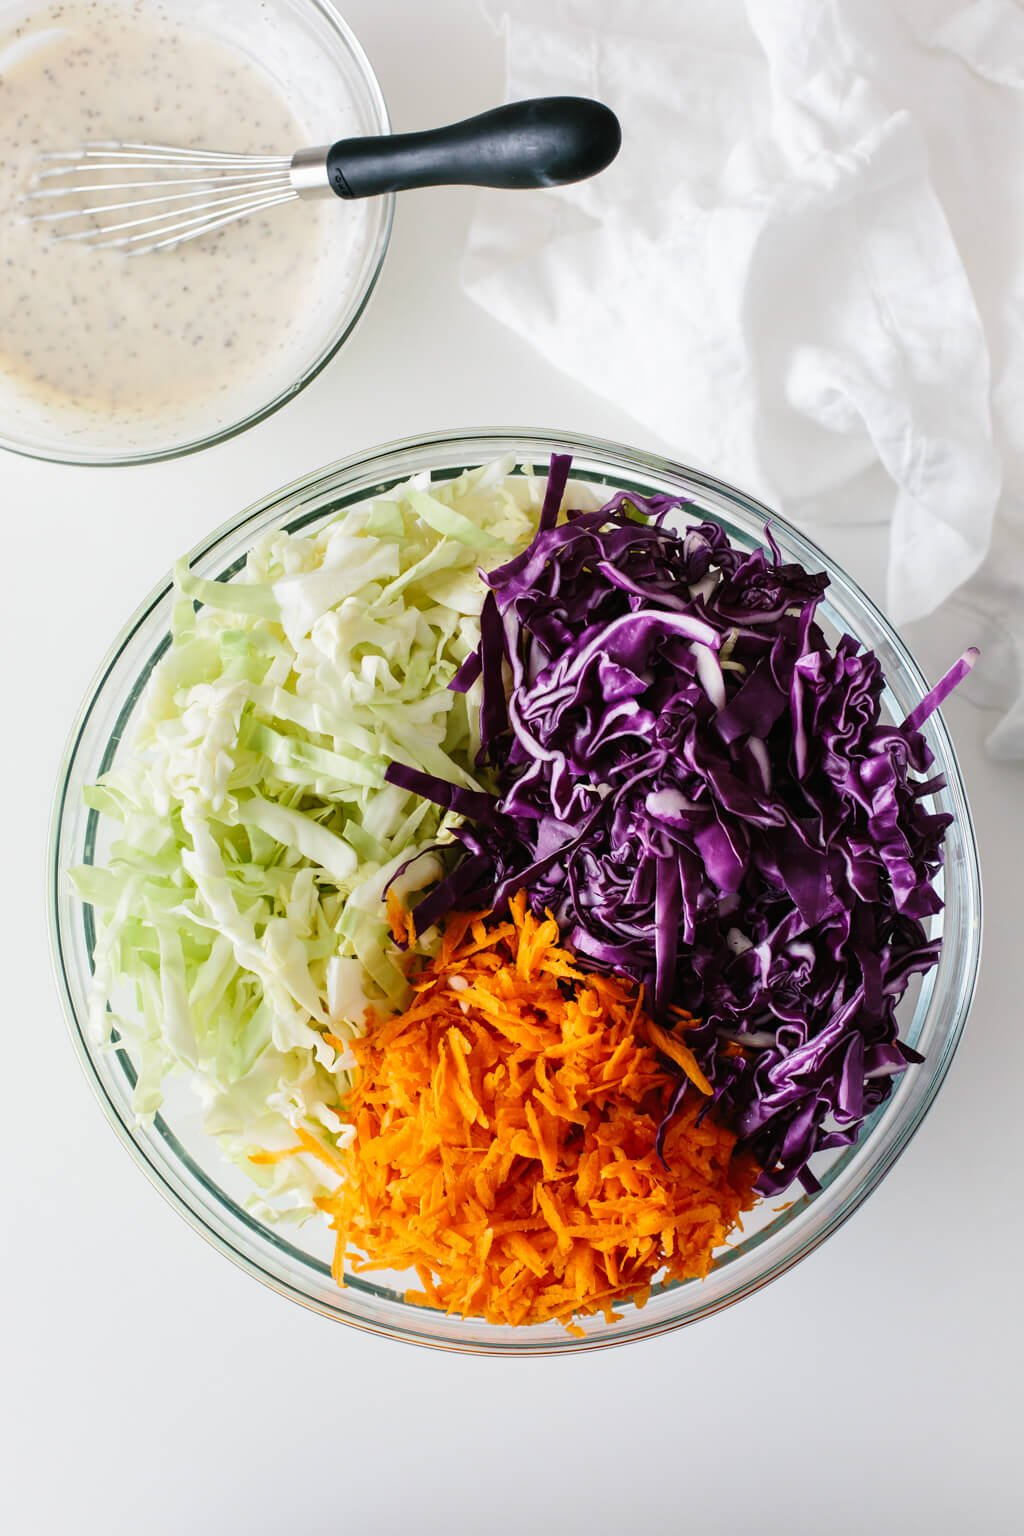 Coleslaw ingredients in a mixing bowl with coleslaw dressing on the side.